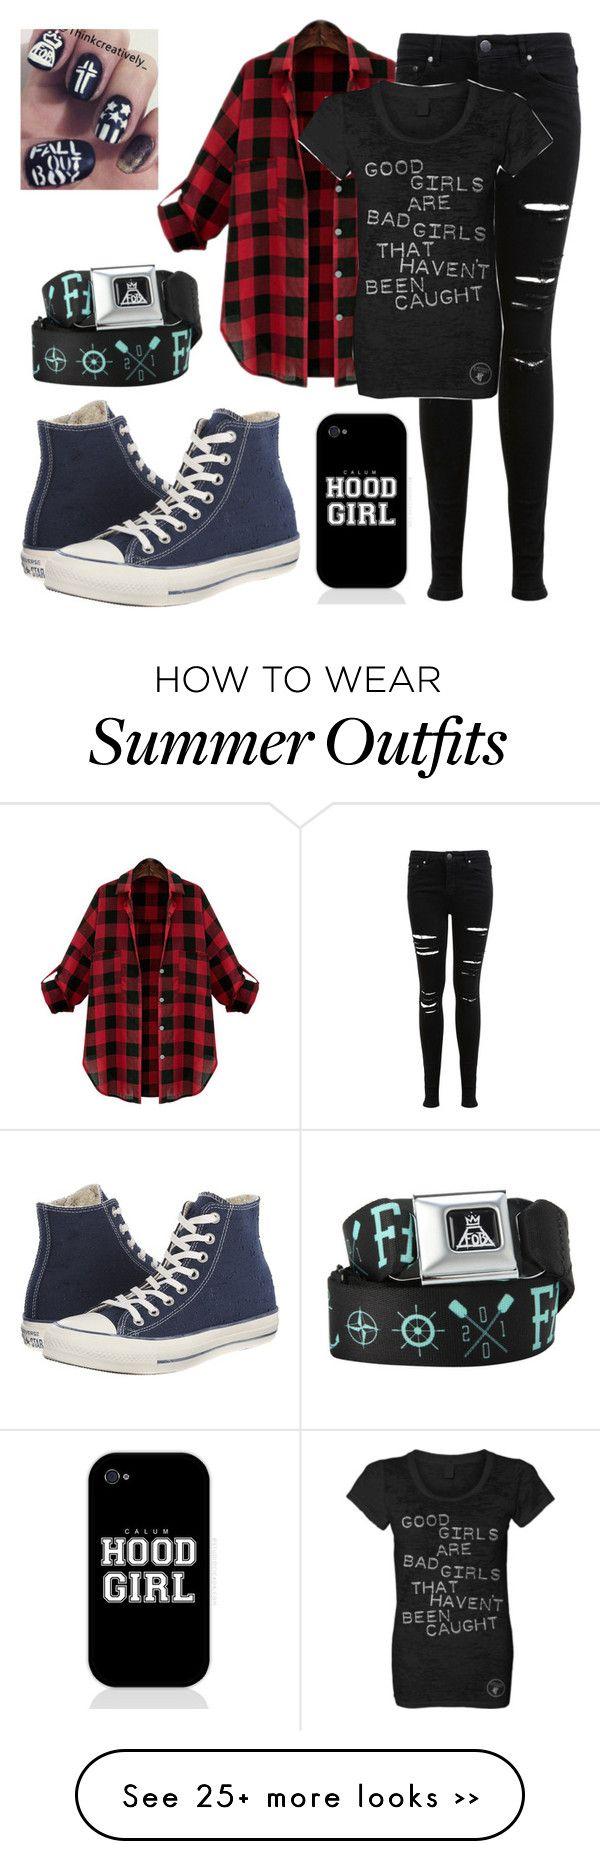 3e36164879133e7f37beaa95a33454b0 - Summer vacations in Minnesota 10 best outfits to wear